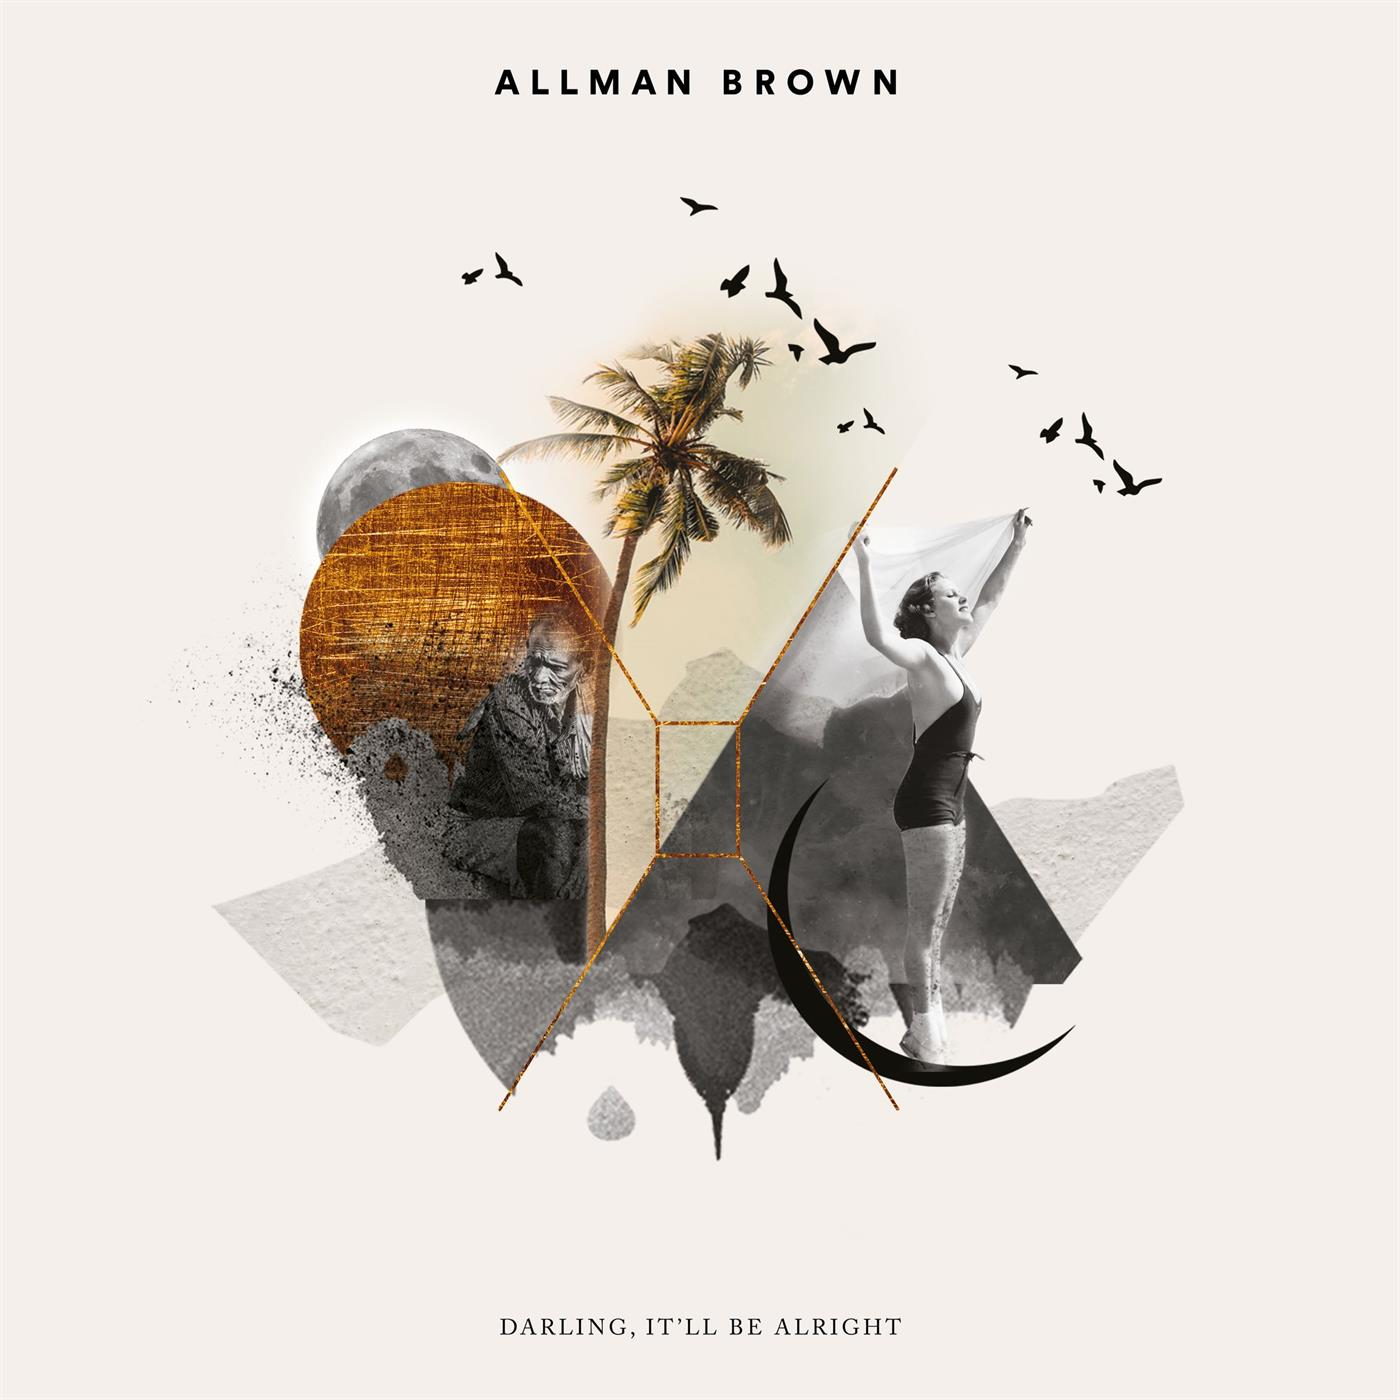 AB018V Allman Brown  Allman Brown Darling, It'll Be Alright (LP)